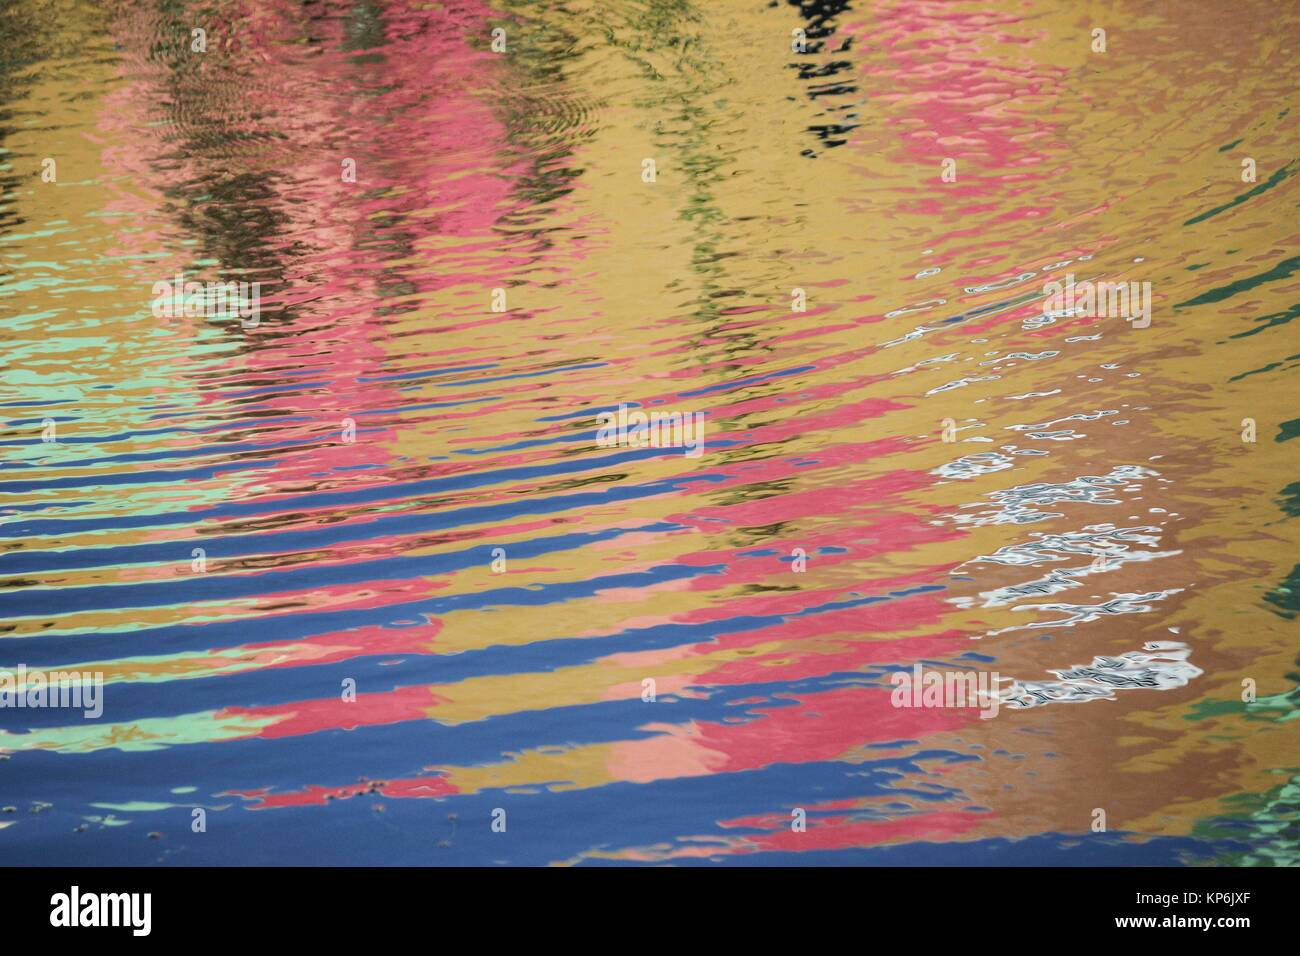 Water canvas for the impressionist painter. Reflected pastels. - Stock Image